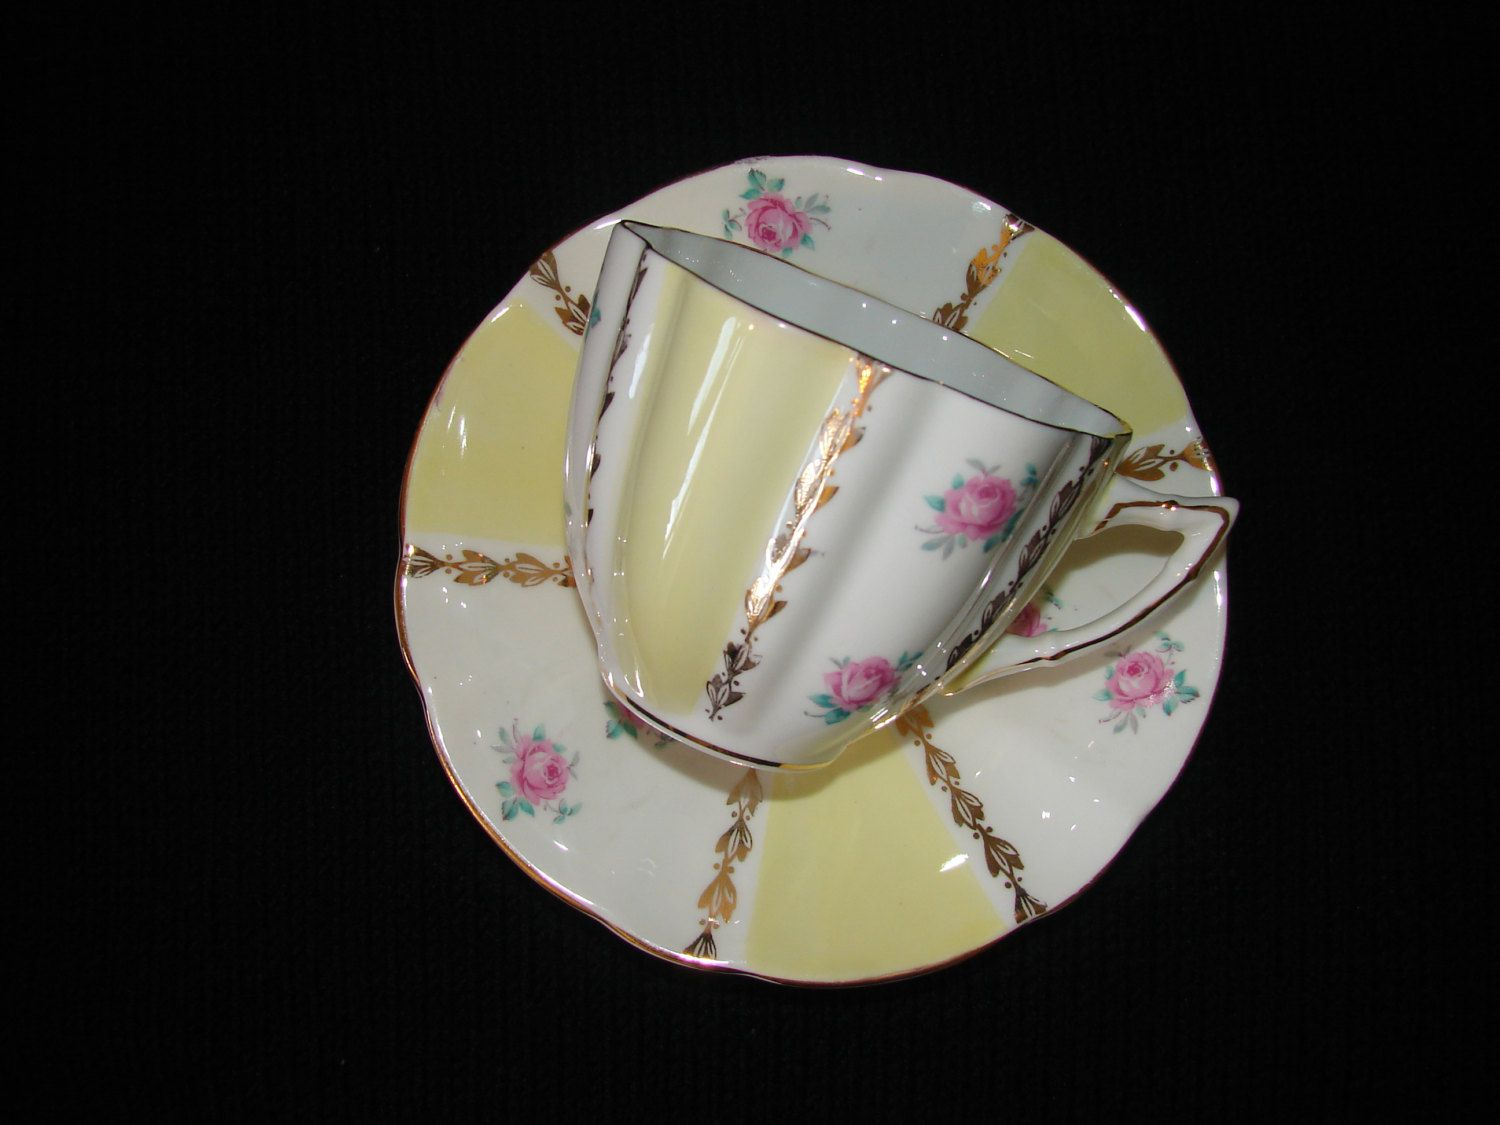 Bone China 22 KT Gold Teacup and Saucer with Sunny Yellow and Pink Roses, Made in England by mycabbageroseshoppe on Etsy